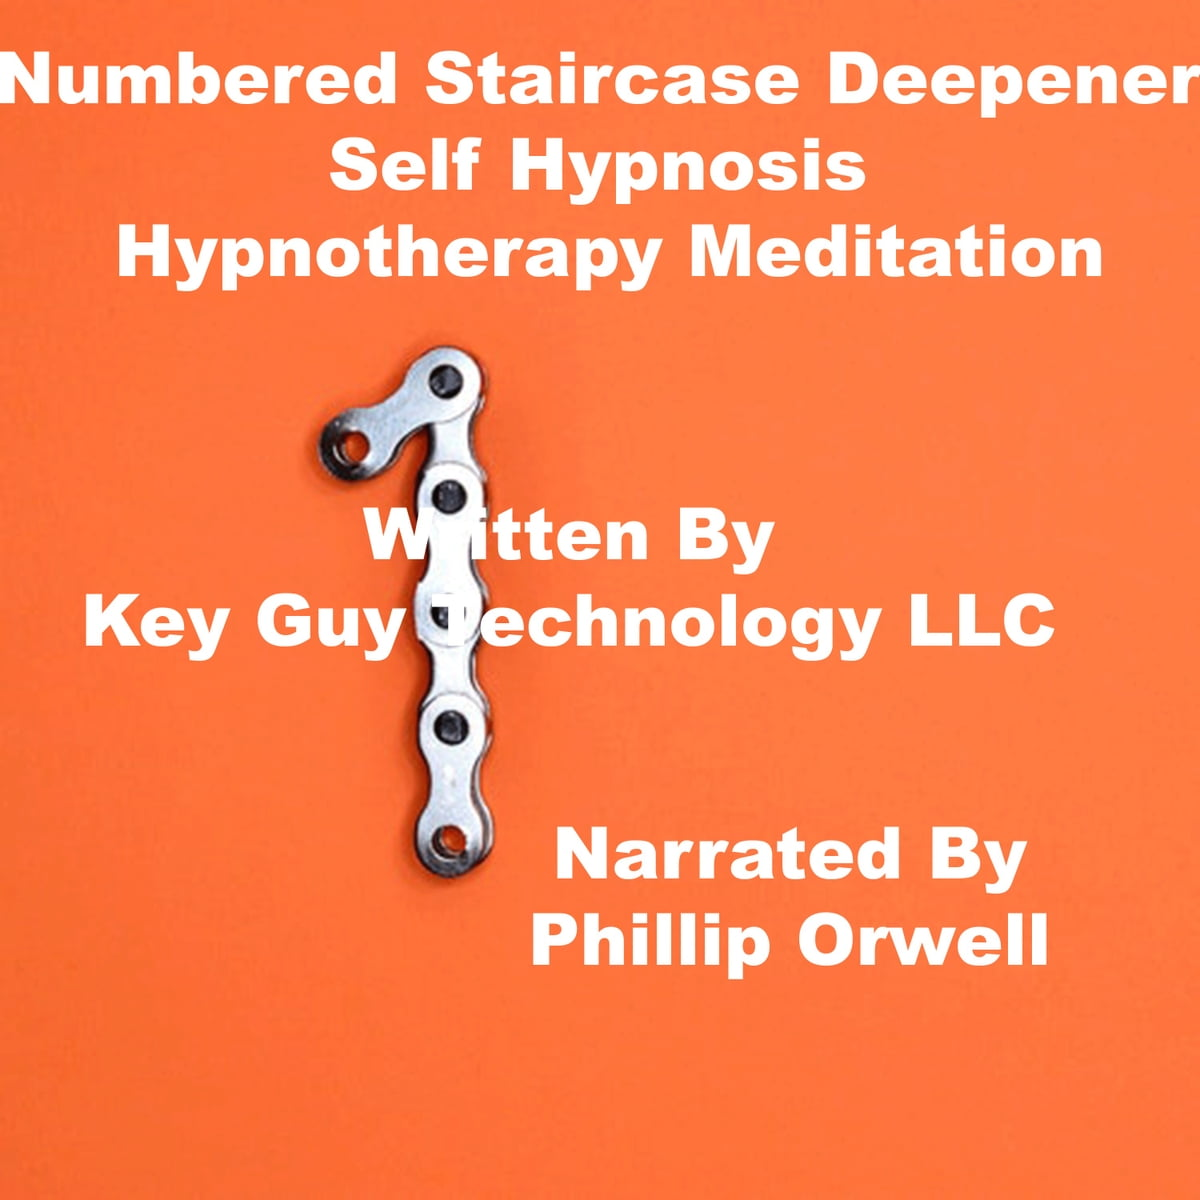 Numbered Stair Case Deepener Self Hypnosis Hypnotherapy Meditation  audiobook by Key Guy Technology LLC - Rakuten Kobo